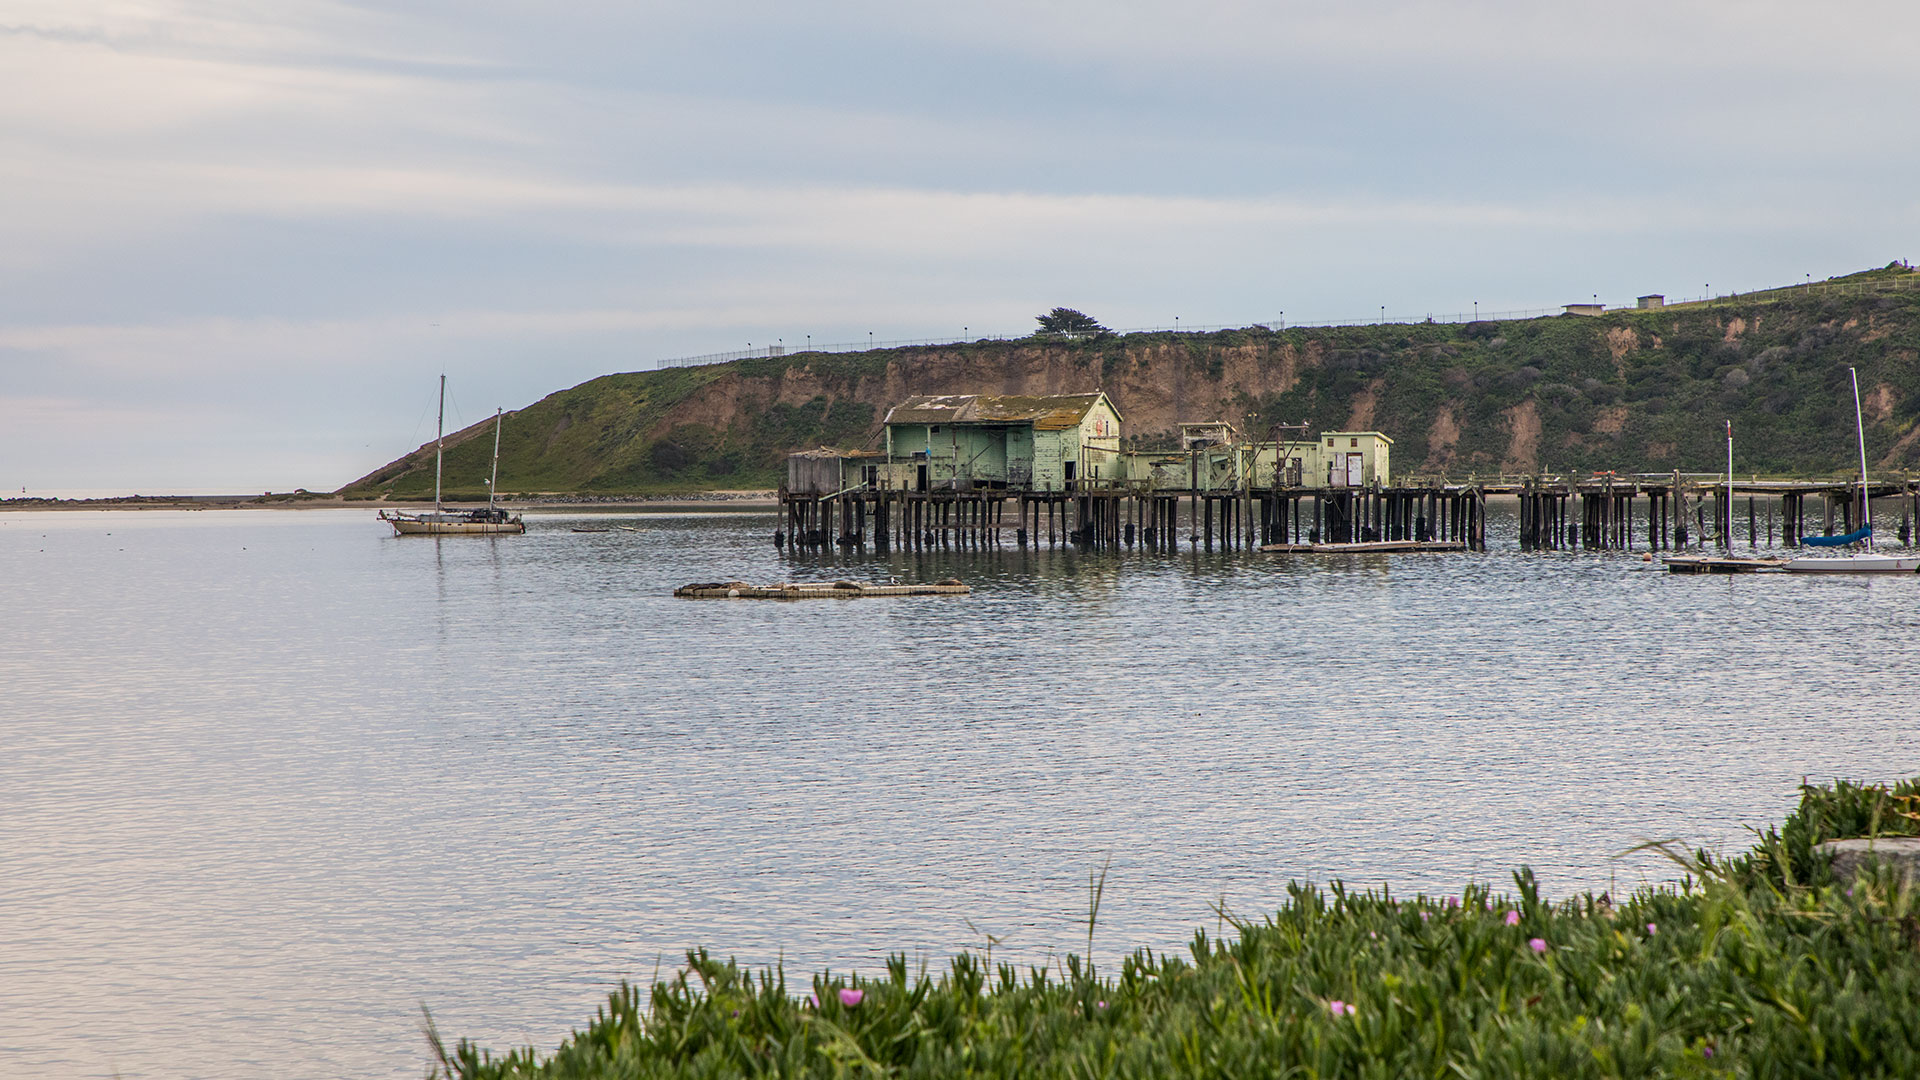 Romeo Pier - Pillar Point Harbor